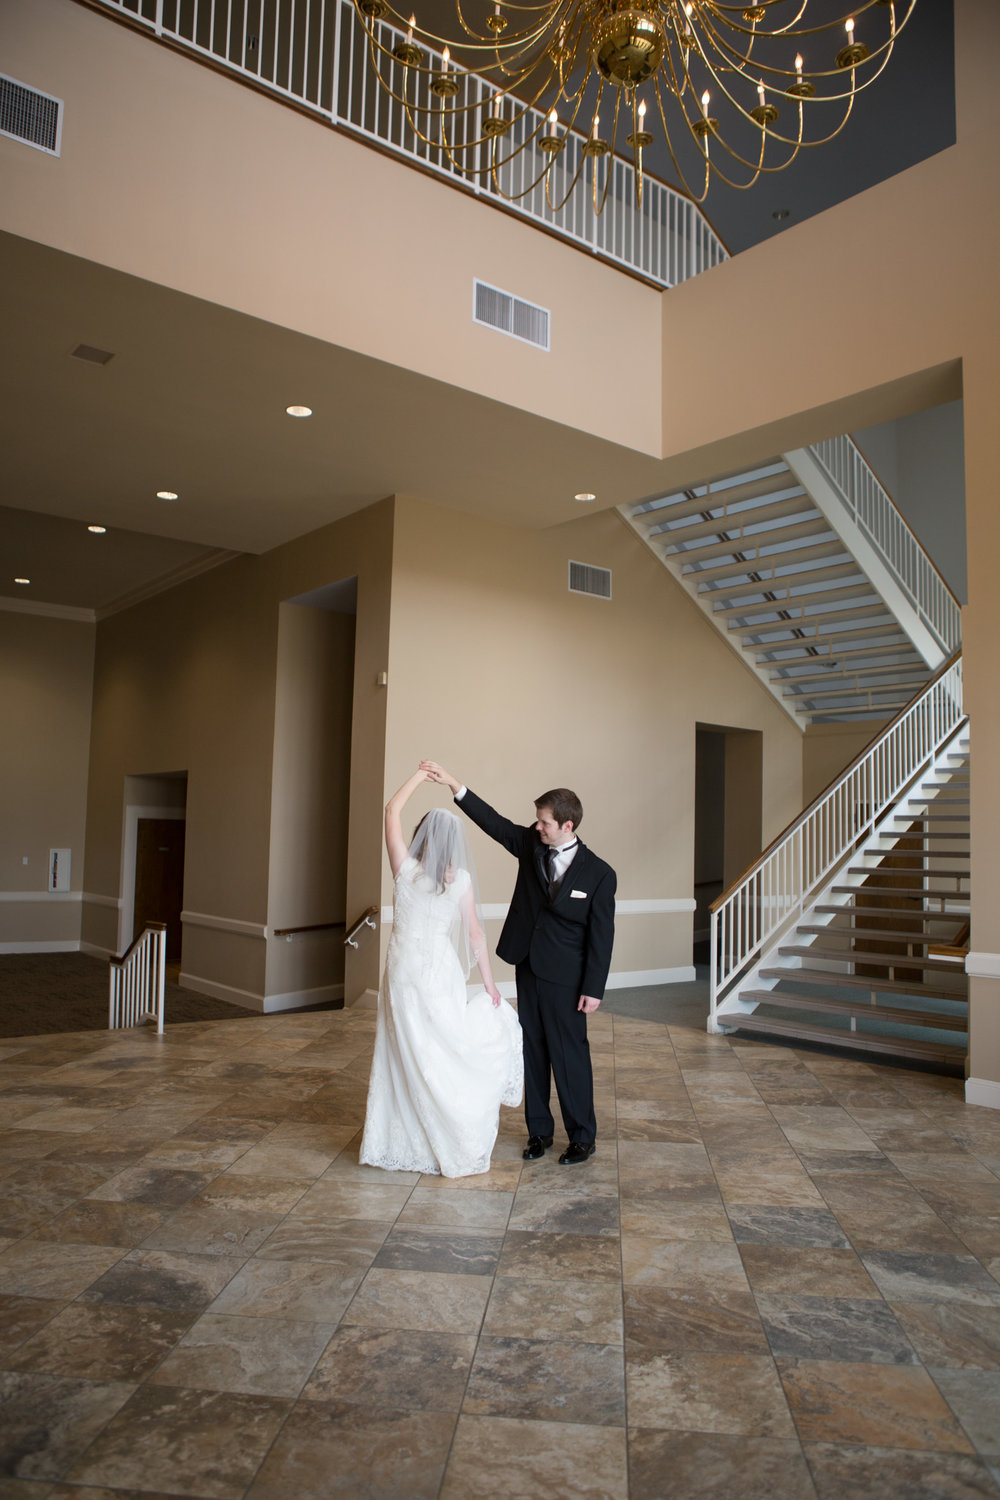 Izehi Photography Dallas Grapevine TX Wedding Photographer-114.jpg